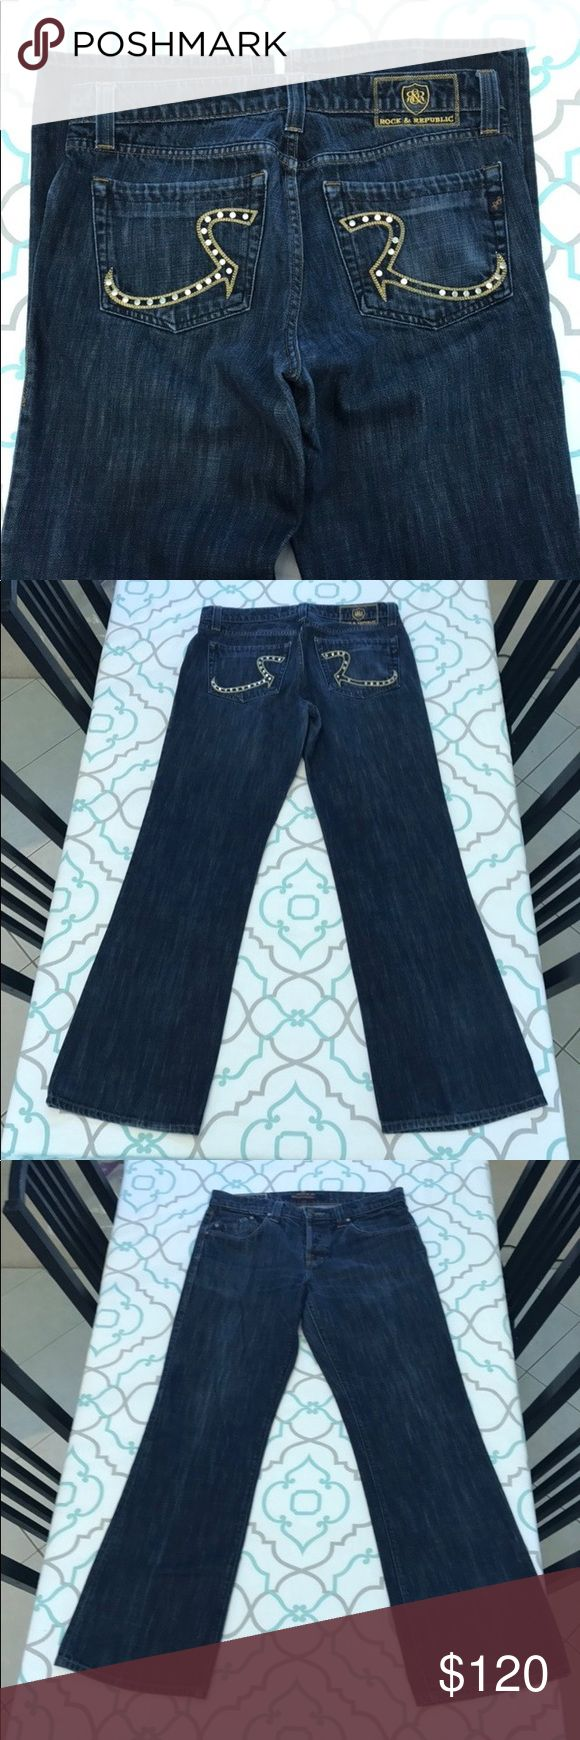 "Rock & Republic Jeans34x32 Gold Studs GUC Rock & Republic Jeans Size 34x32.  32.25"" Inseam. 10.25"" Rise. 17.25"" Across Back. No fabric content. No Stretch. Dark Blue Wash. Slightly Fading. Floyd Fit. Studded R's. 5 missing gold studs. Contrasting Yellow Thread. Some missing stitches on bottom hem. Otherwise- Good Used Condition. R&R! Ask me any questions! : ) Rock & Republic Jeans Bootcut"